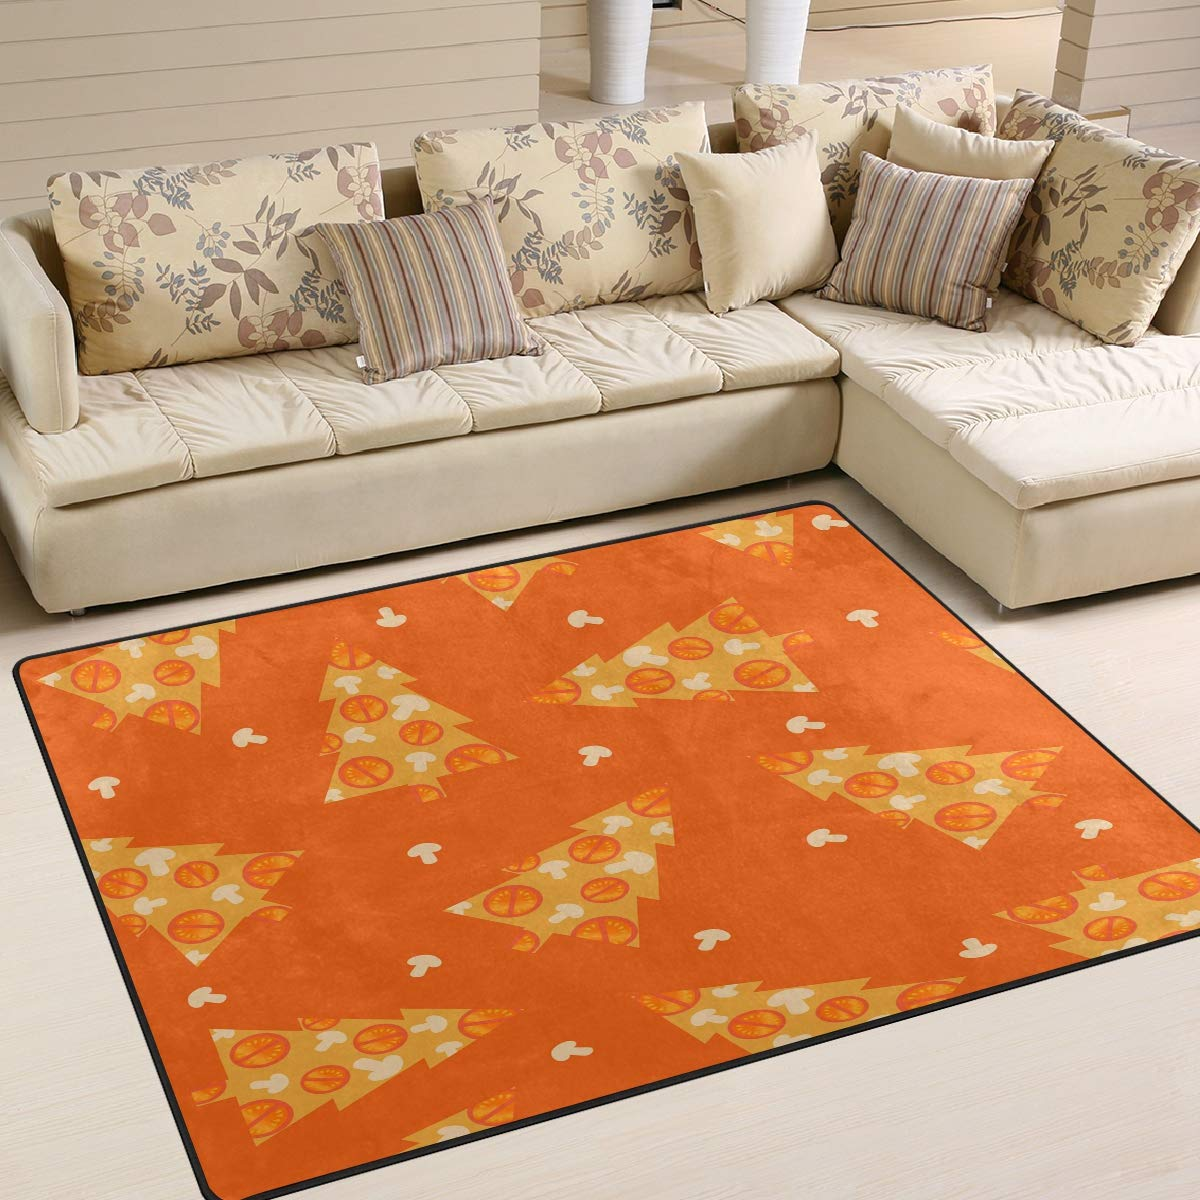 ALAZA Christmas Trees Decorated by Pizza Ingredients Indoor Modern Area Rug 4' x 5', Dining Room Home Bedroom Carpet Floor Mat Nursery Rug Room Mat